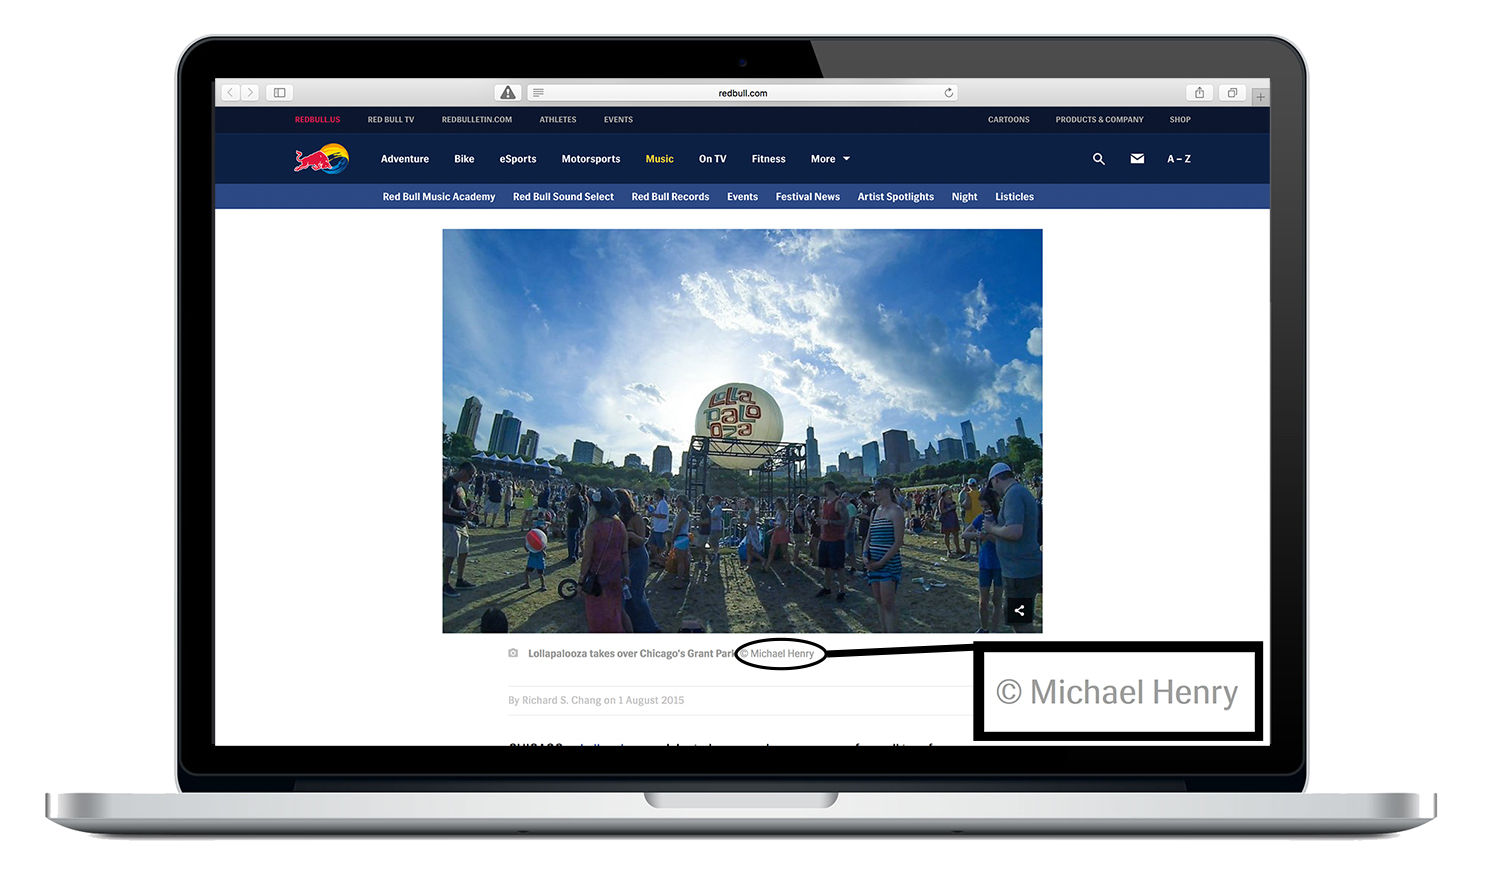 My Image featured on Redbull.com